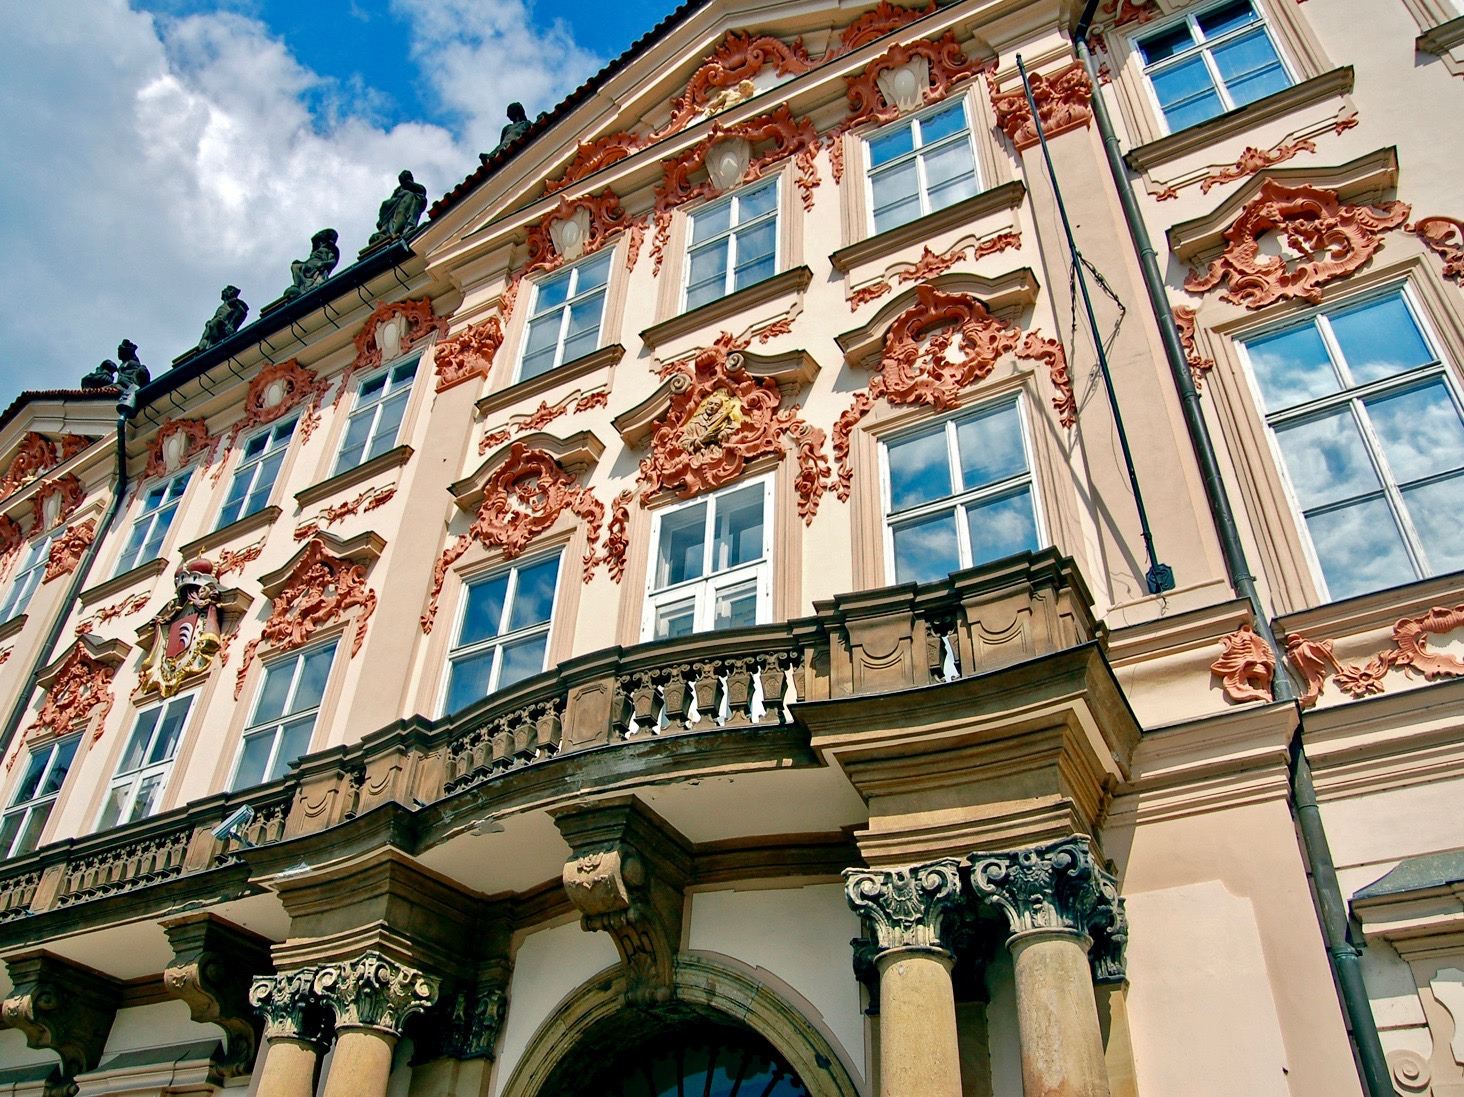 Rococo, a late Baroque architecture style, Goltz-Kinský Palace on Old Town Square from the 18th century in Prague.